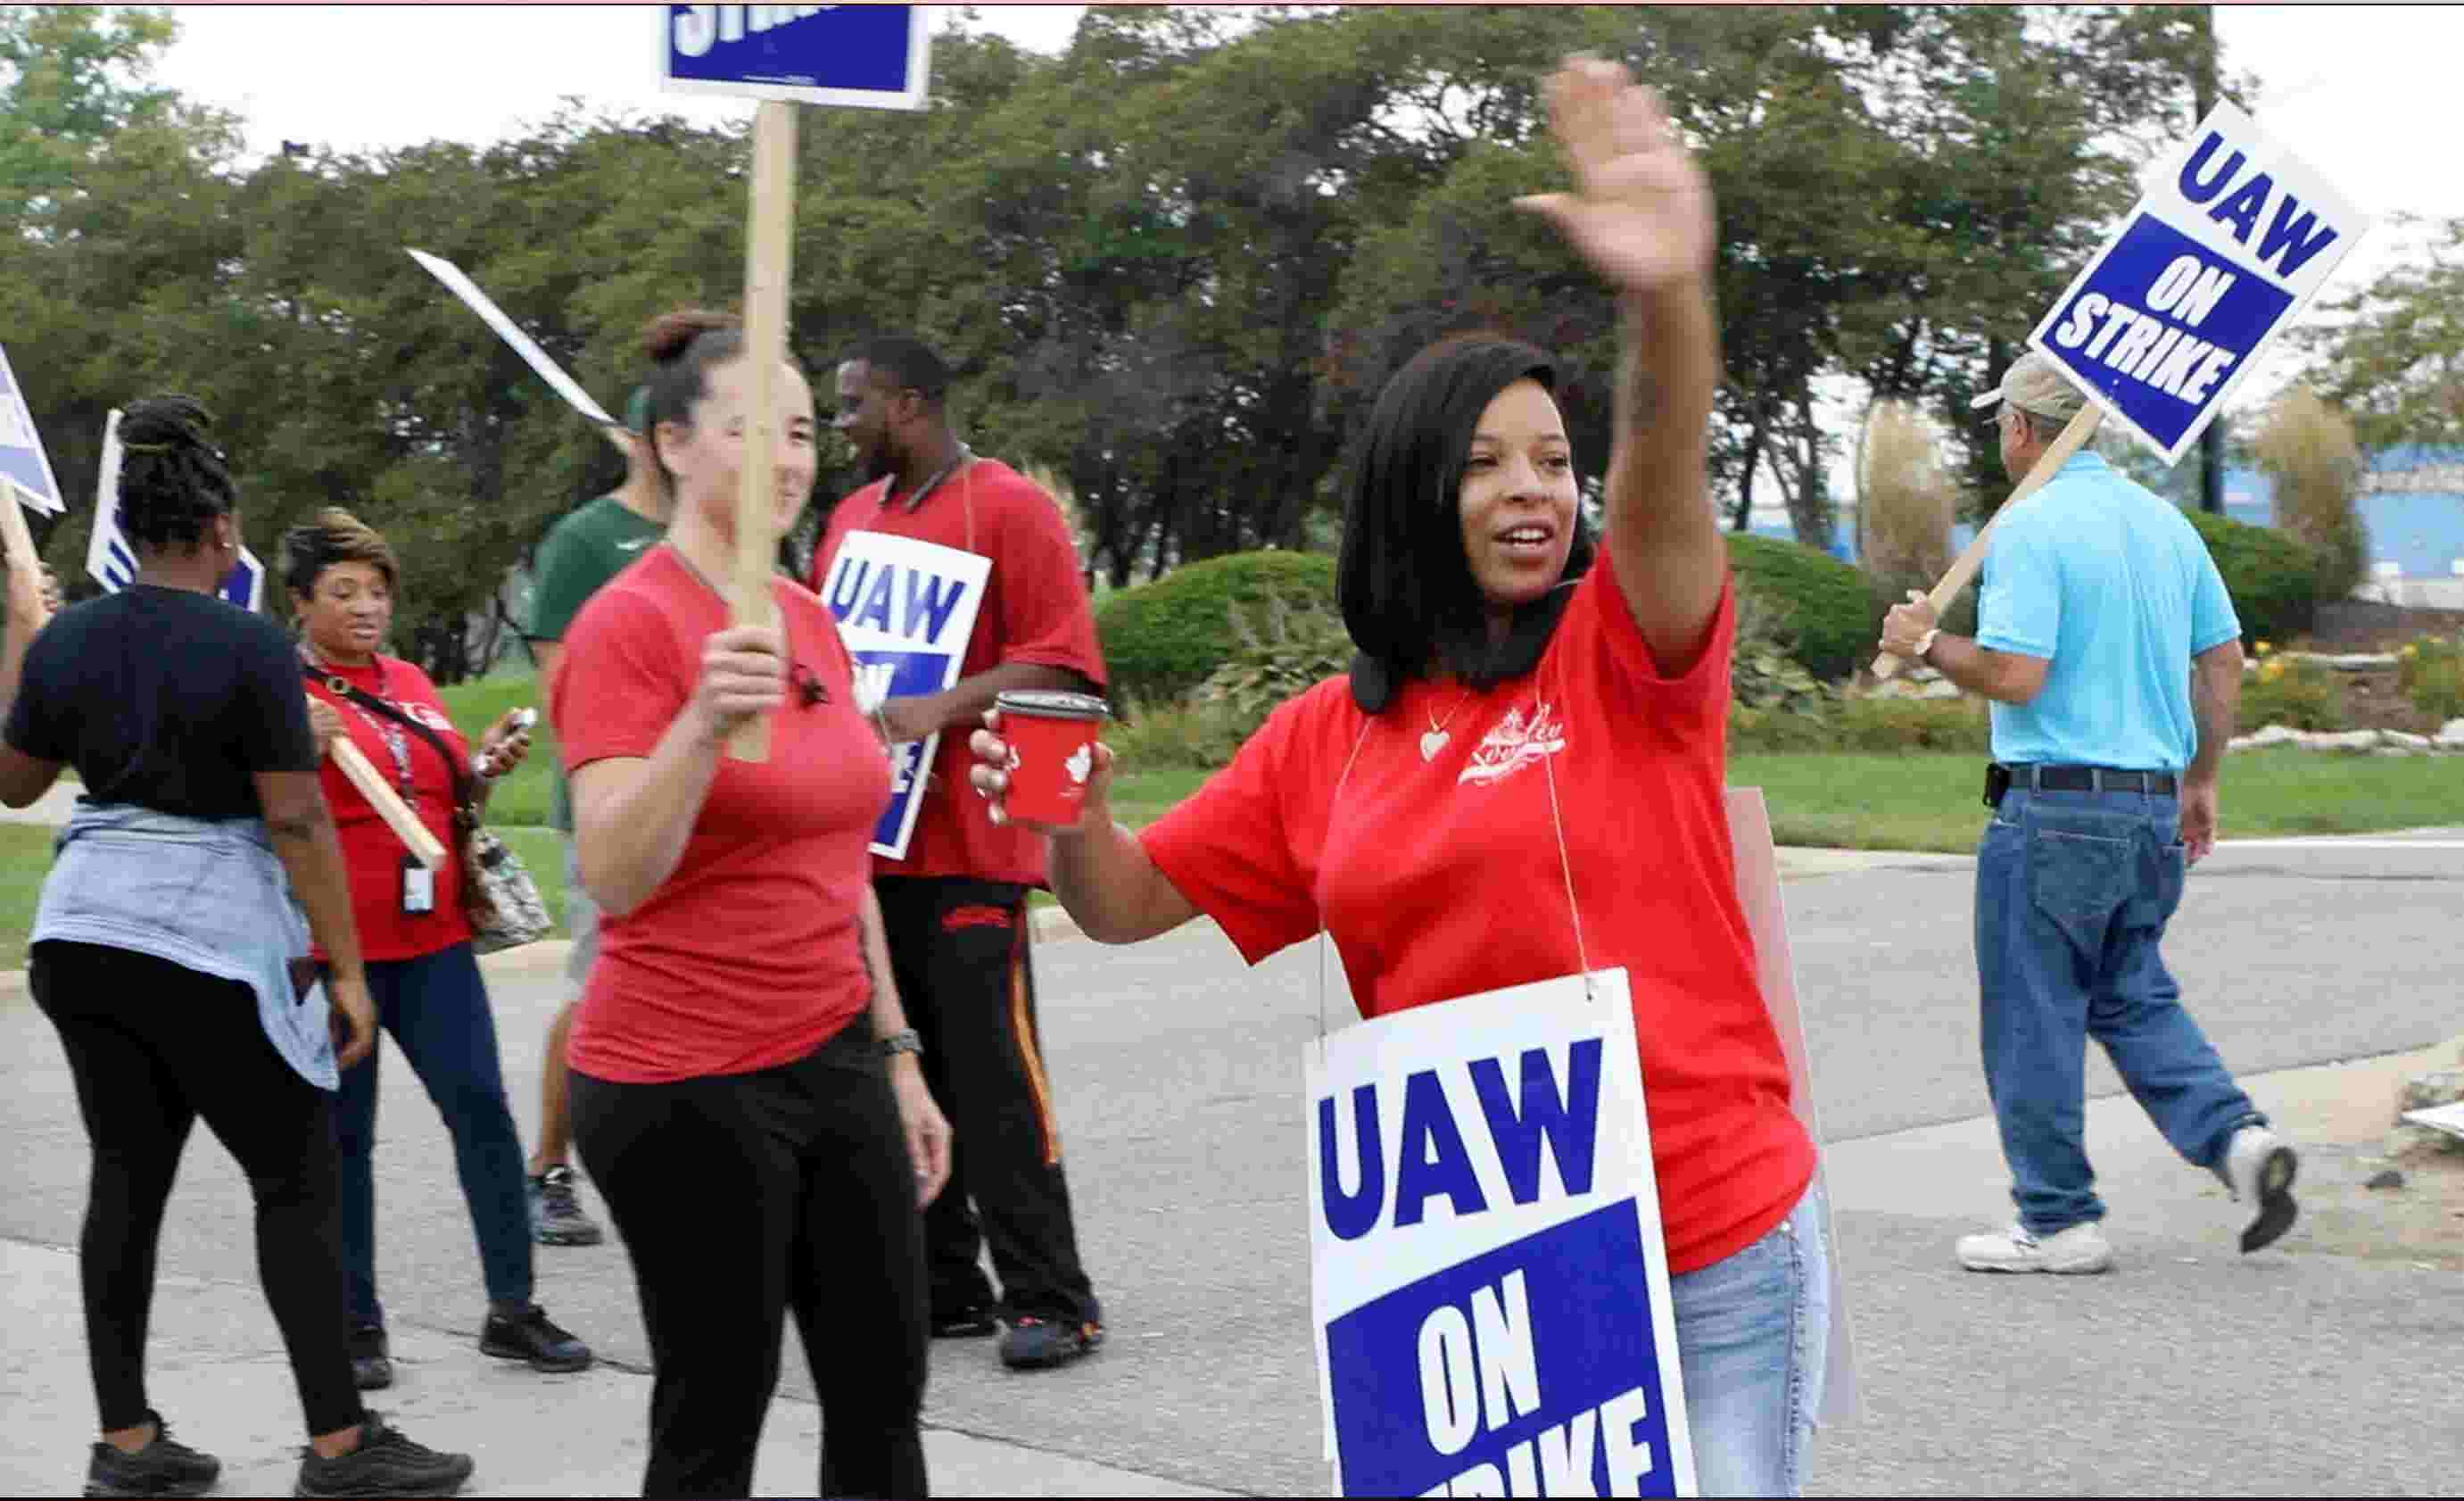 UAW: 'Pay hasn't caught up with inflation' after 'bankruptcy sacrifices'